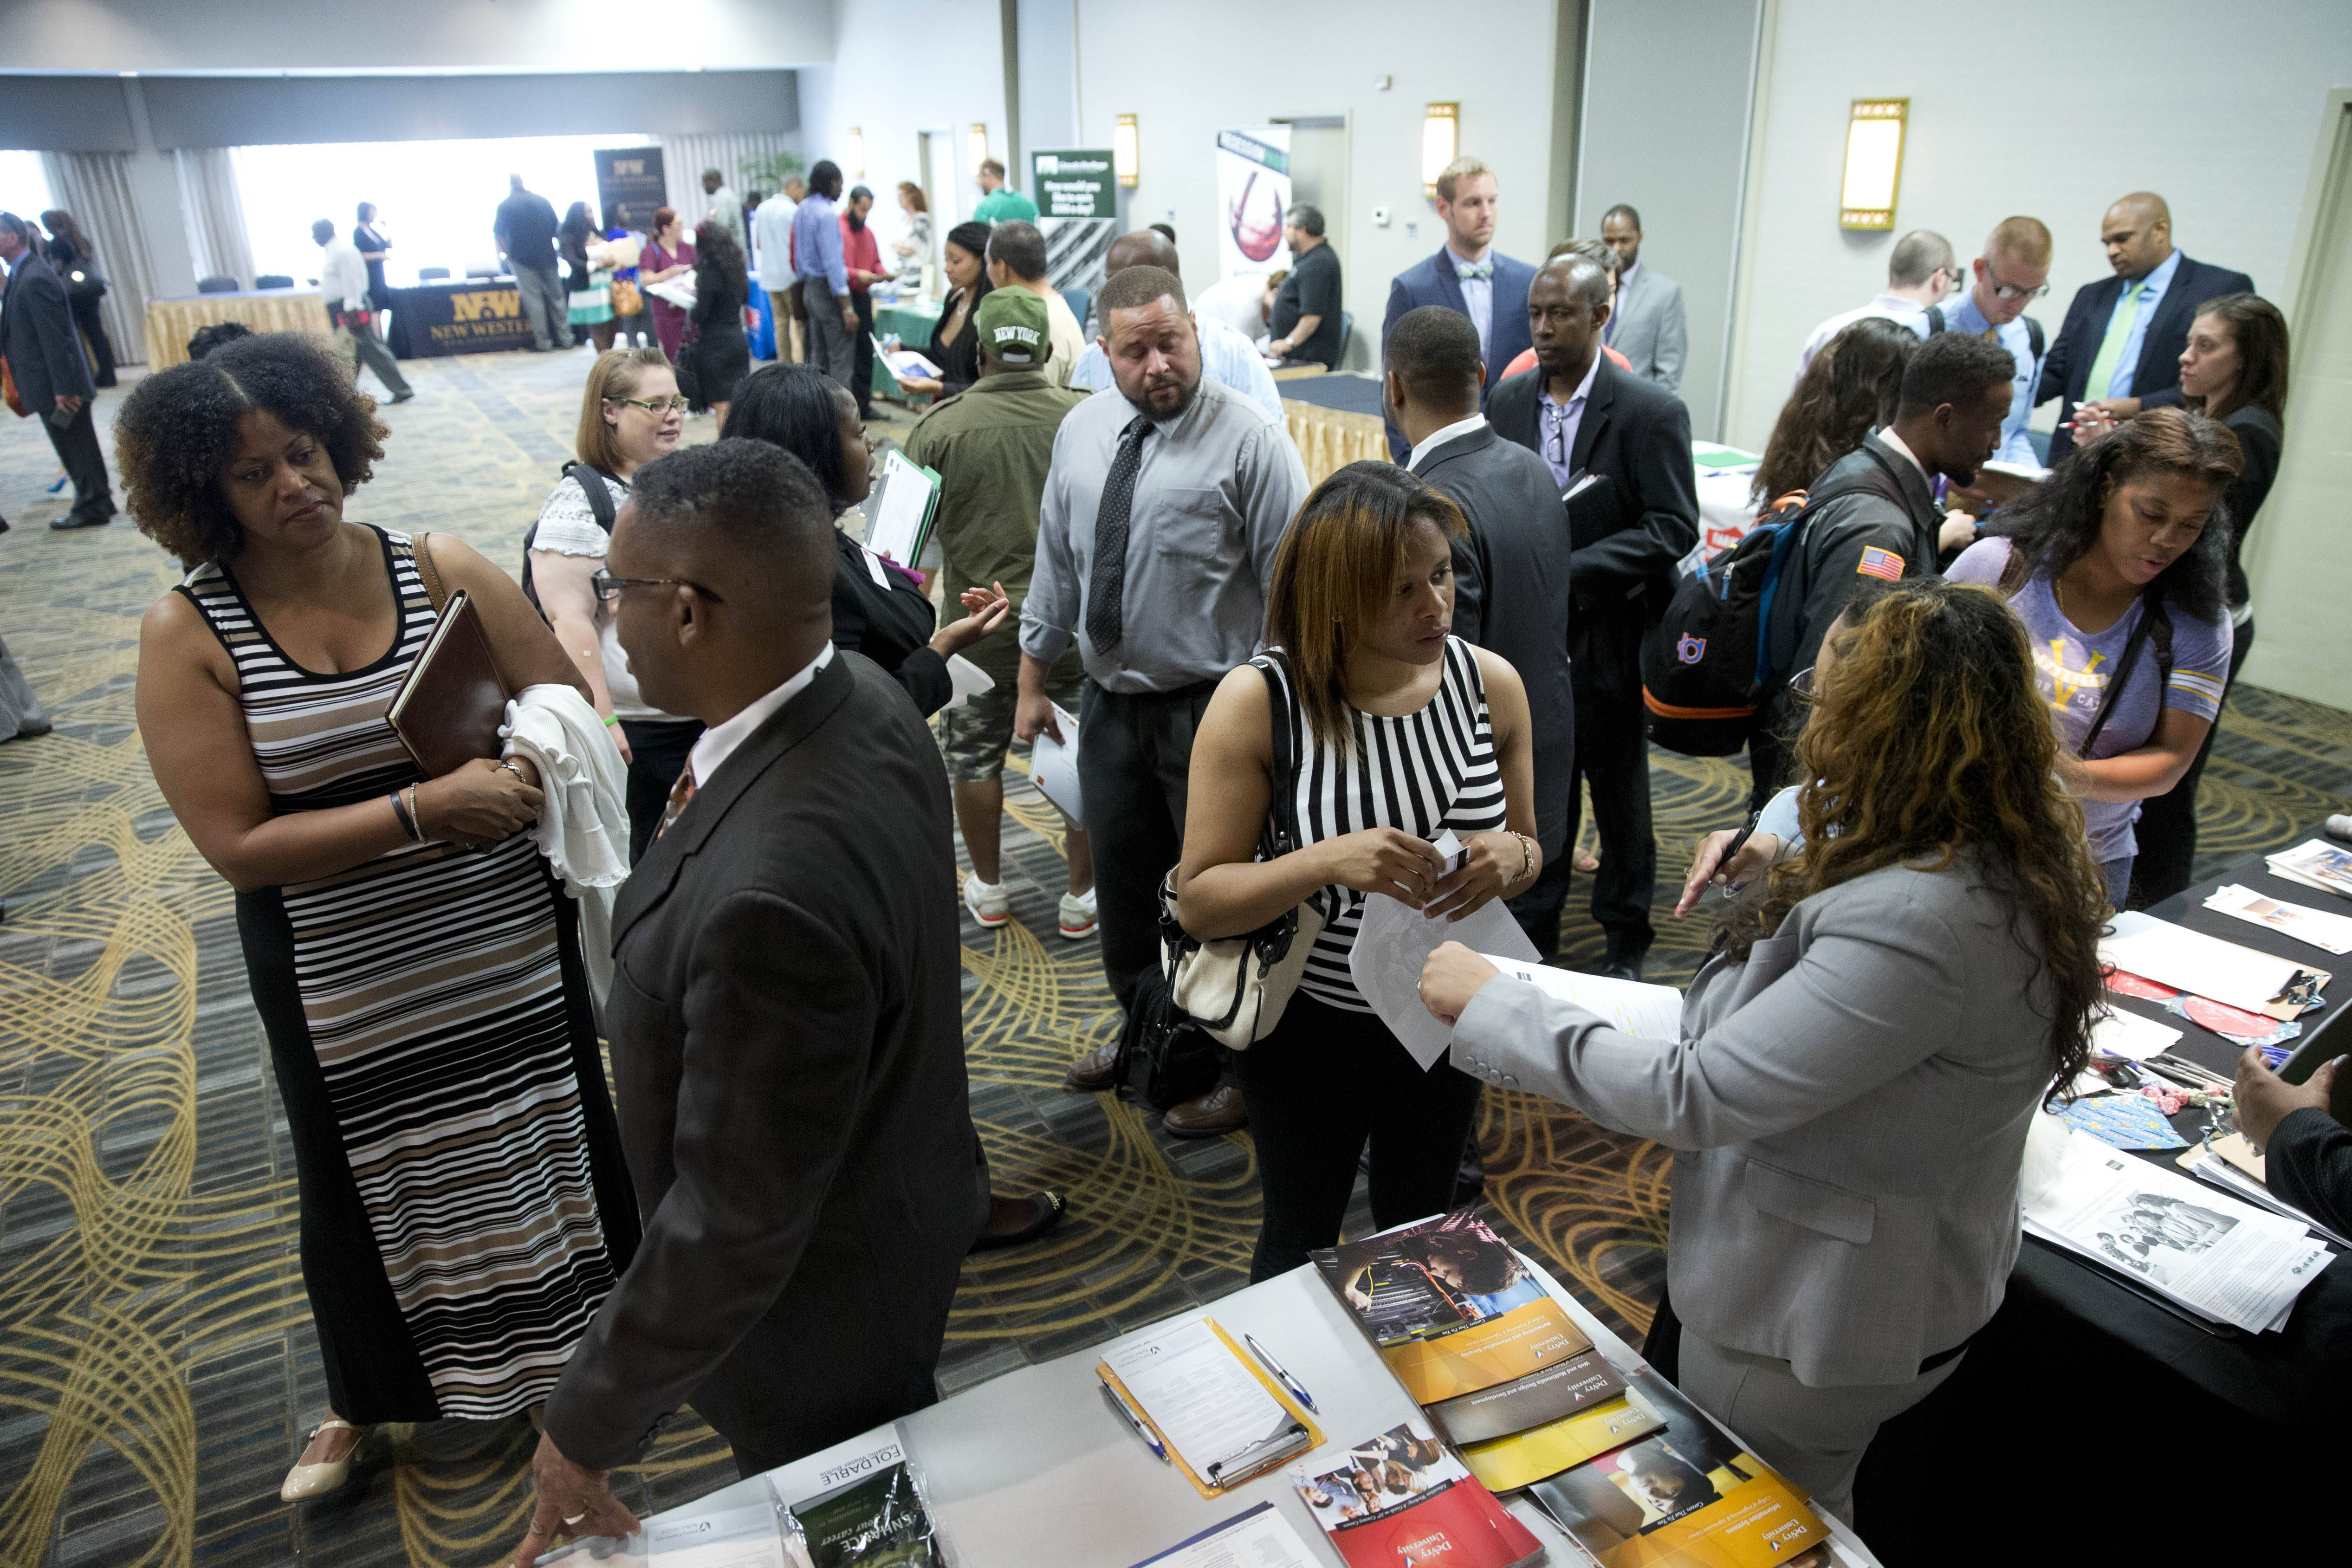 The number of Americans seeking unemployment benefits declined last week, the latest evidence that a sharp economic slowdown earlier this year hasn't caused employers to cut jobs.